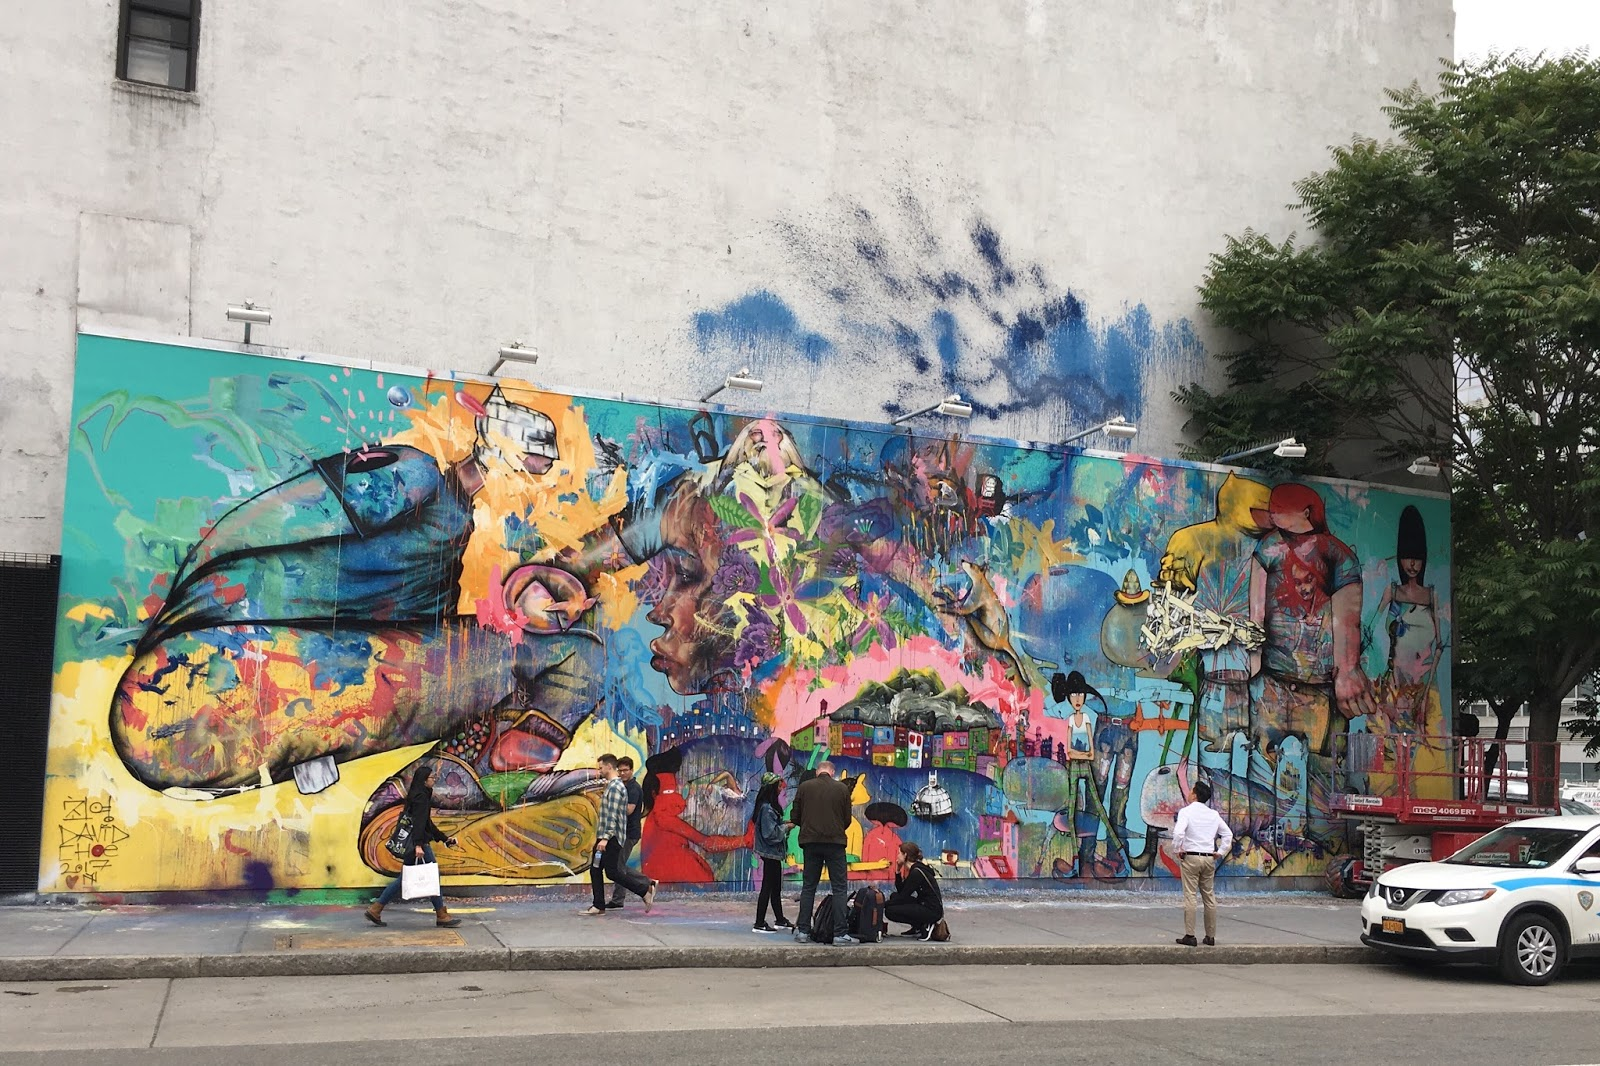 Ev grieve updated looking at david choe 39 s finished for Bowery mural nyc